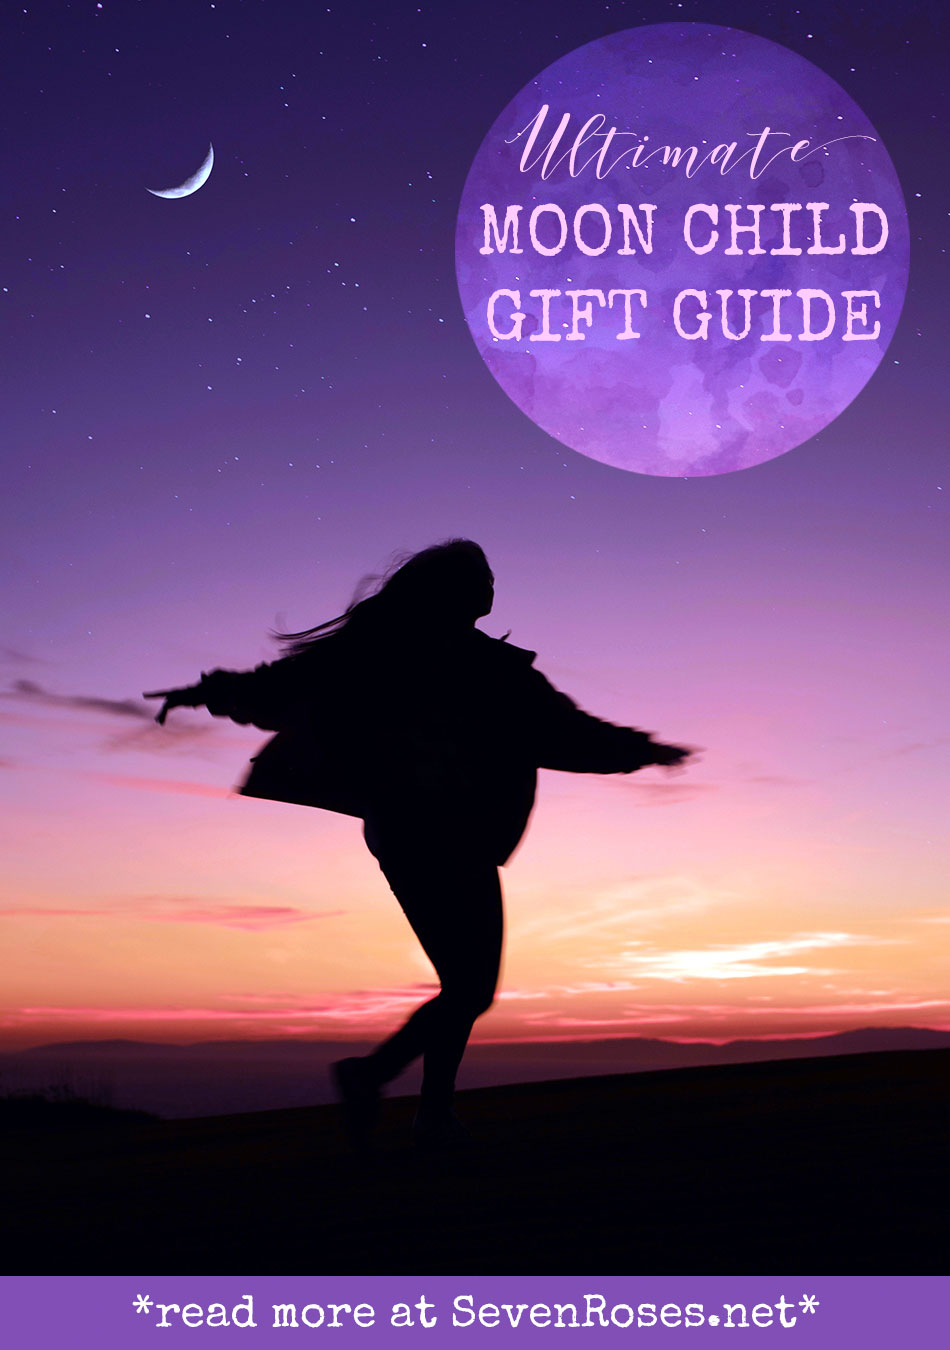 Ultimate Moon Child gift guide